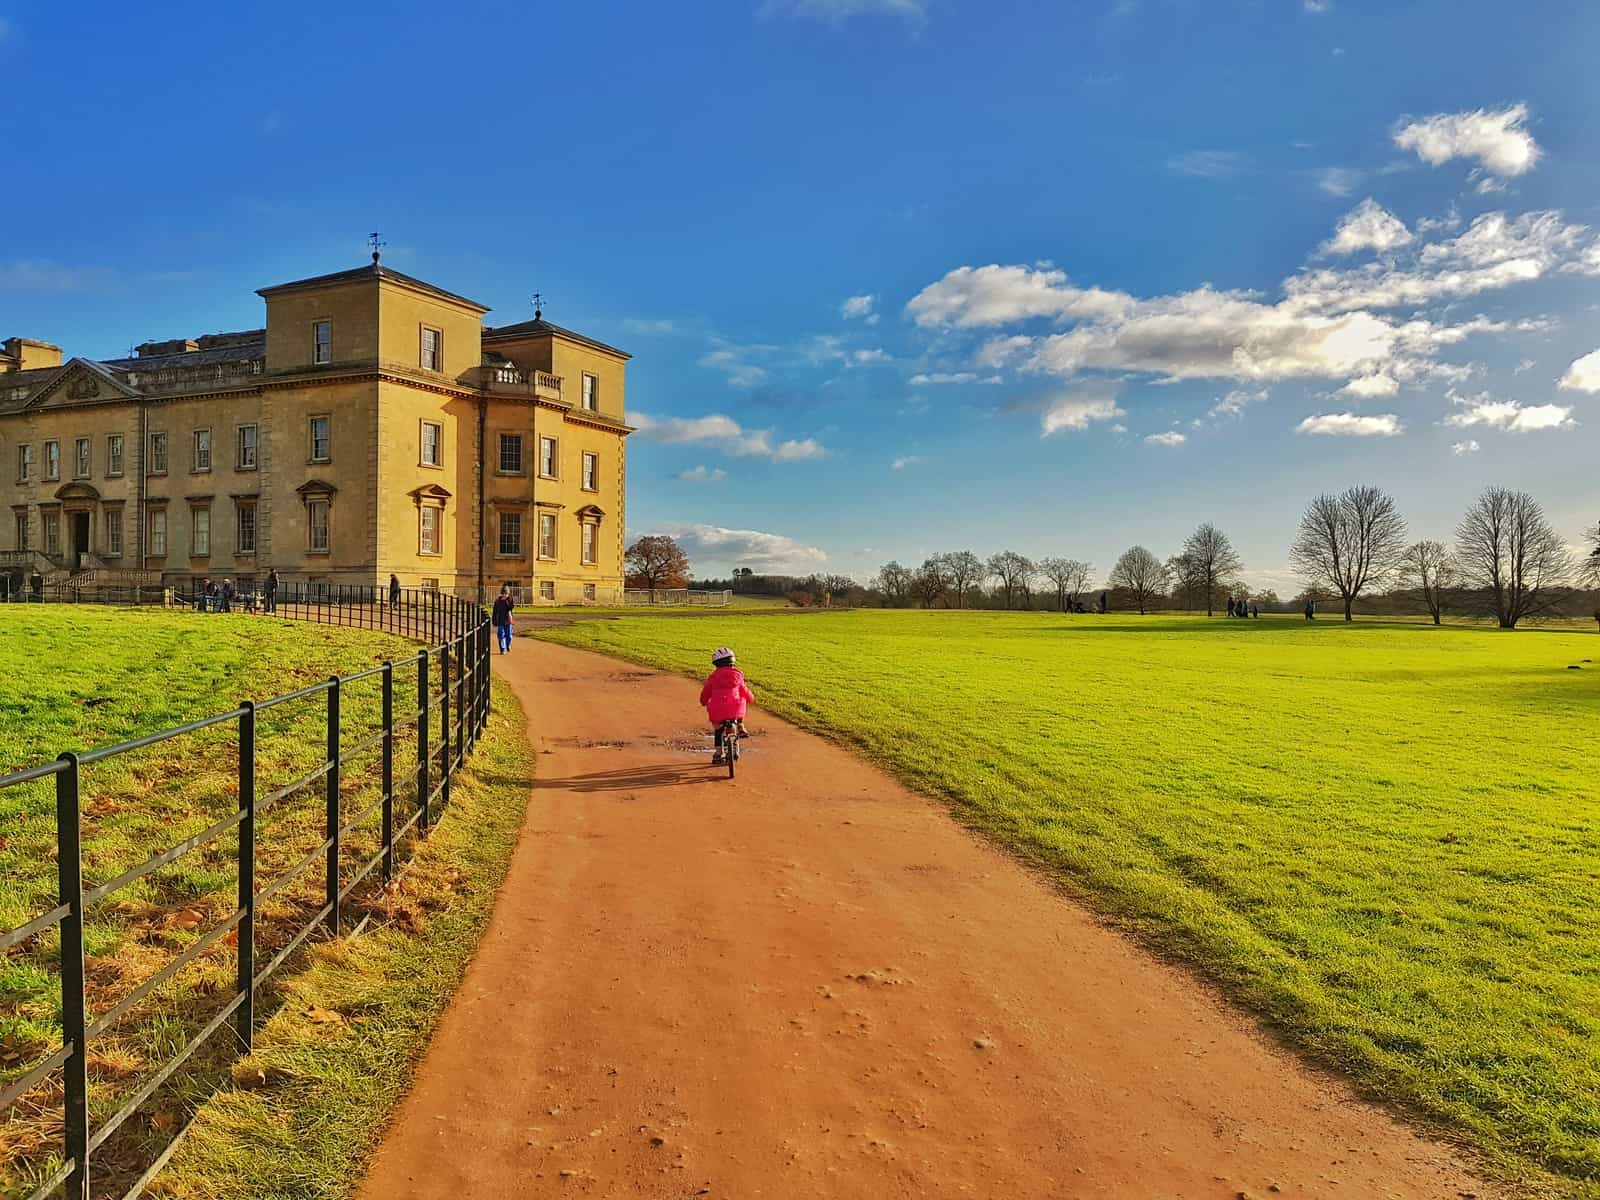 Croome court in the distance with a three year old girl cycling towards it. Blue sky with a few clouds.